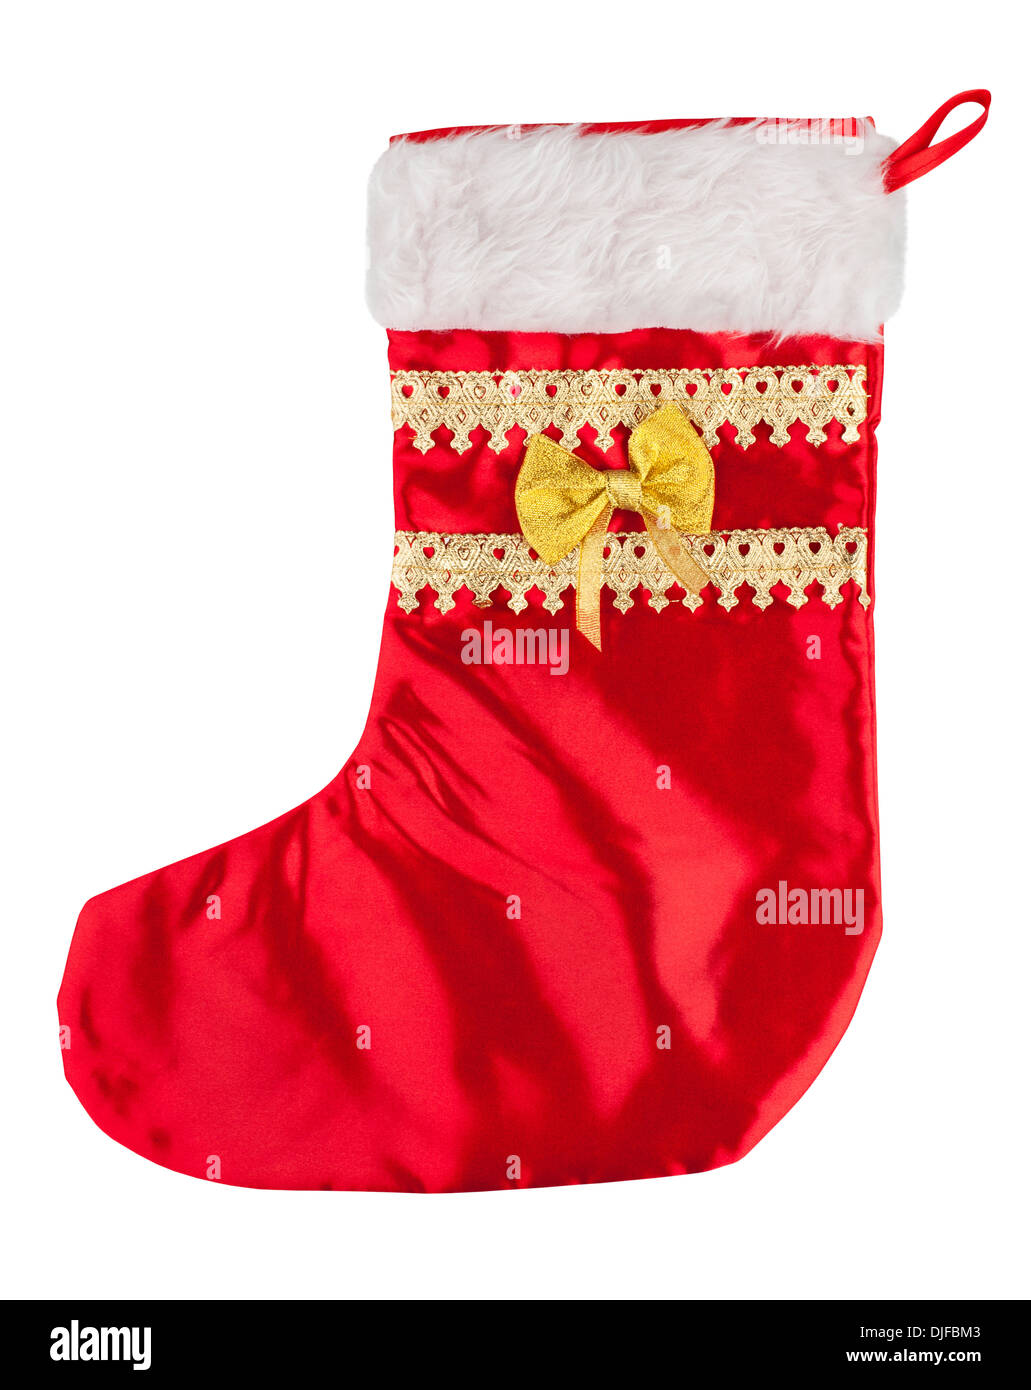 White Sock Stockfotos & White Sock Bilder - Seite 2 - Alamy